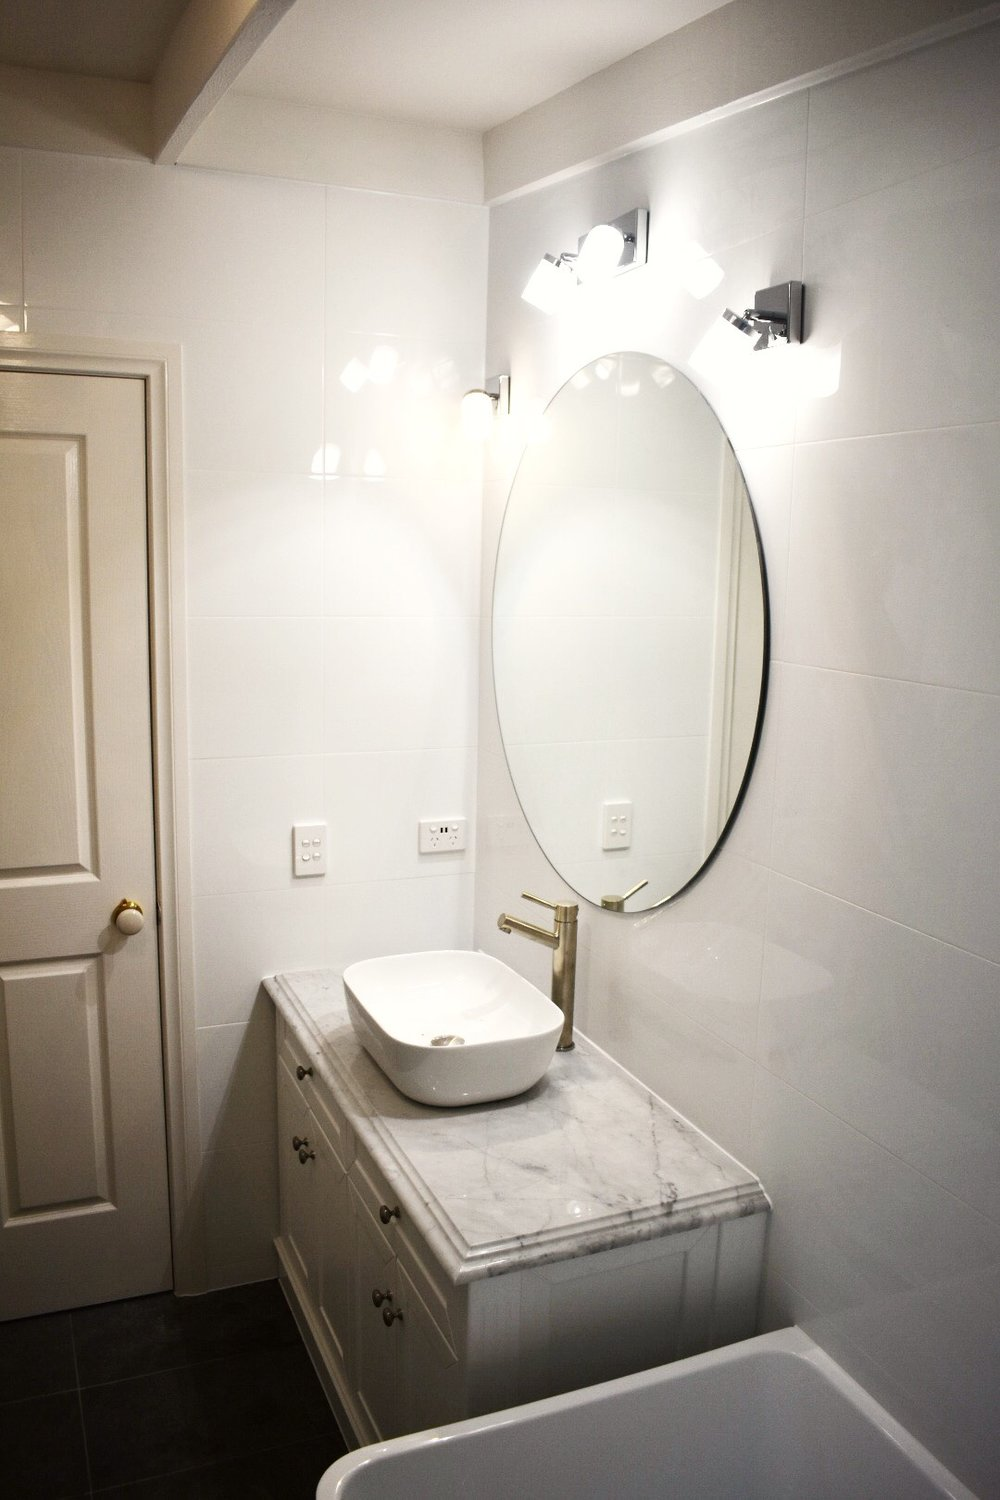 Bathroom renovation with mirrors and lighting